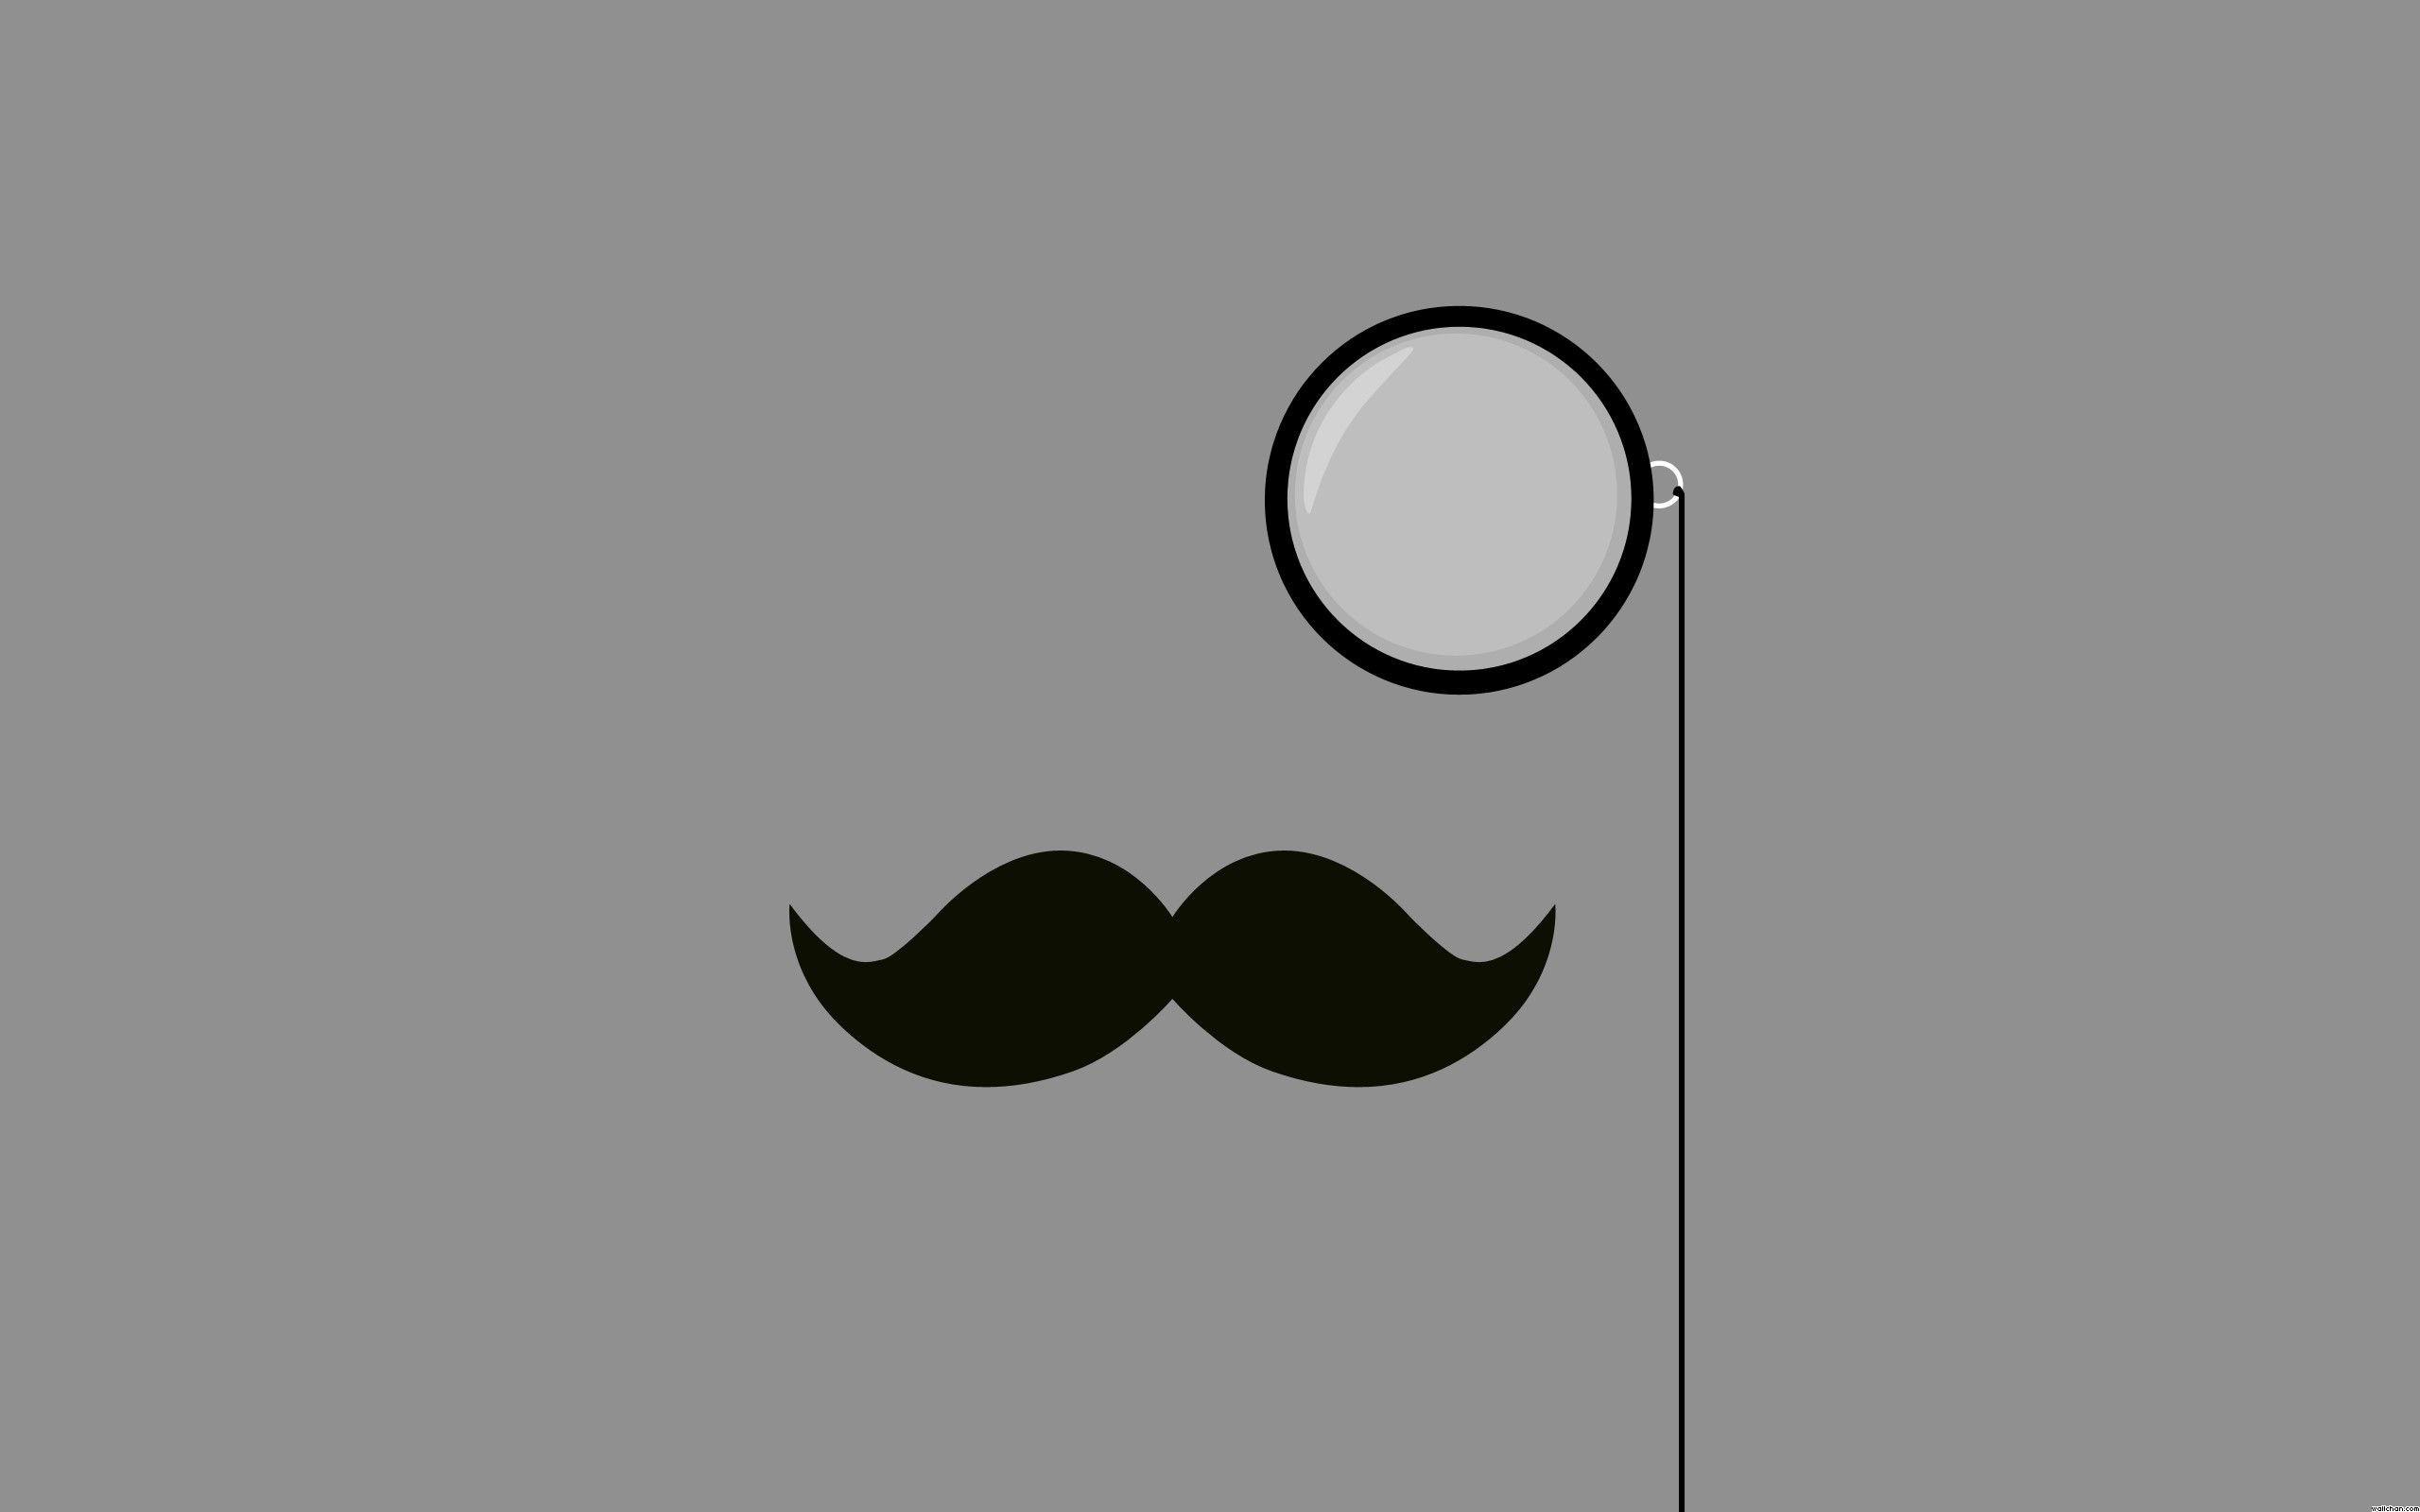 2560x1600 Cute Mustache Wallpapers on Tumblr ·①